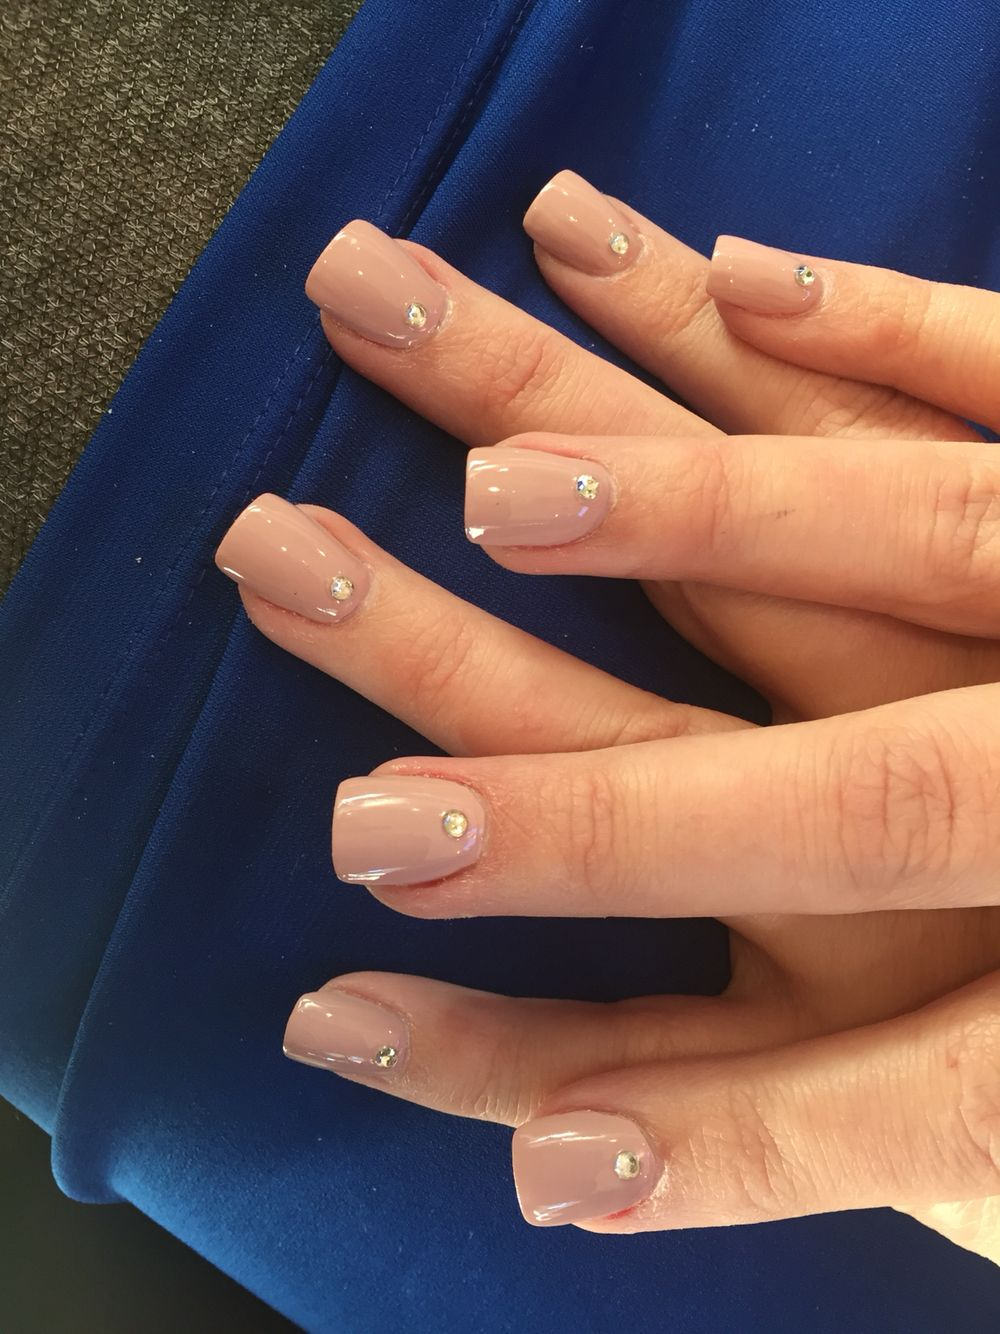 Nude acrylic nails with diamond accent | Nails | Pinterest | Acrylic ...